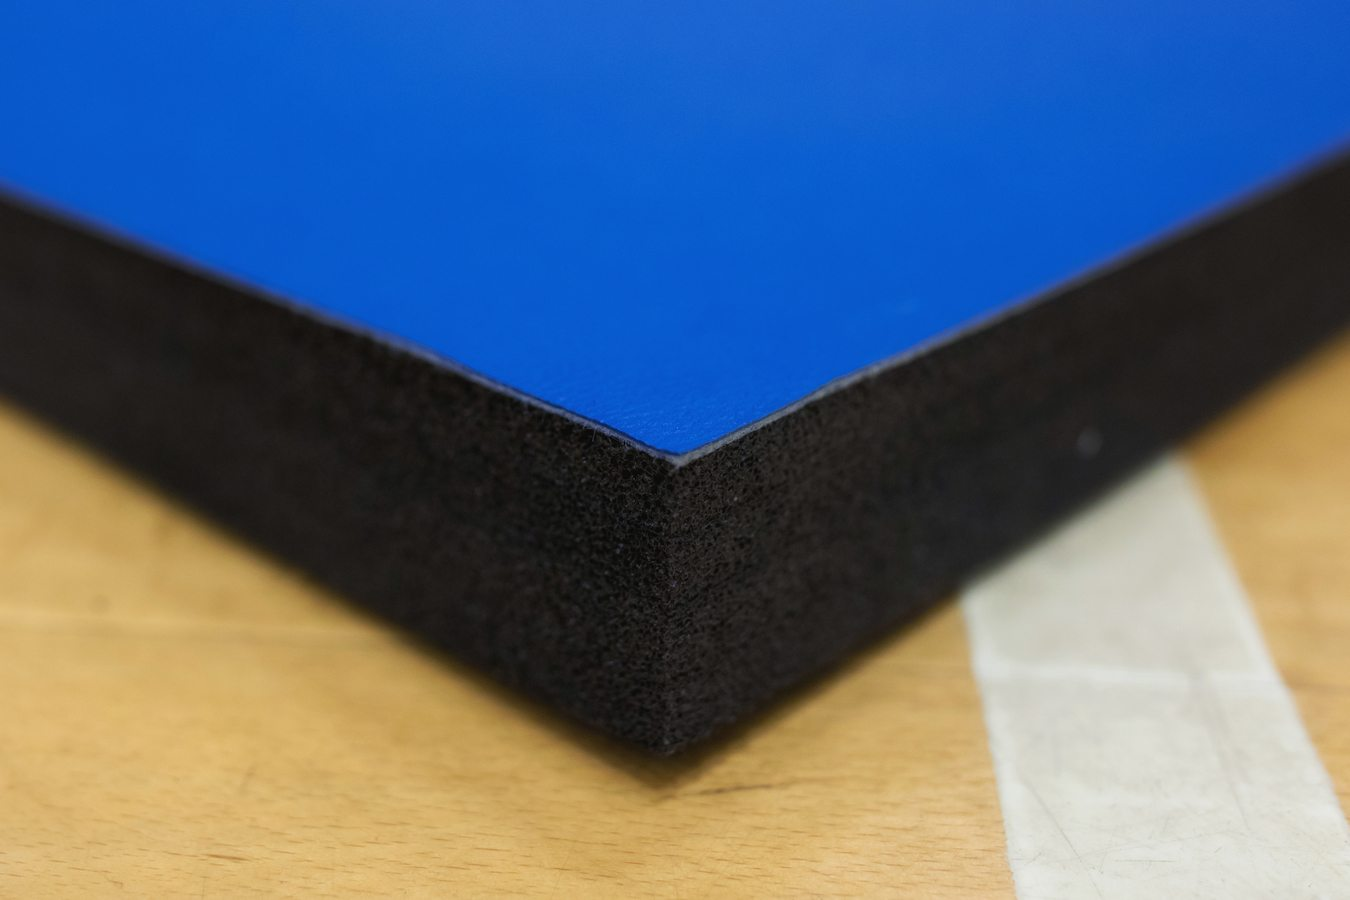 Corner of Blue Promat PVC Smooth Roll Out Mats